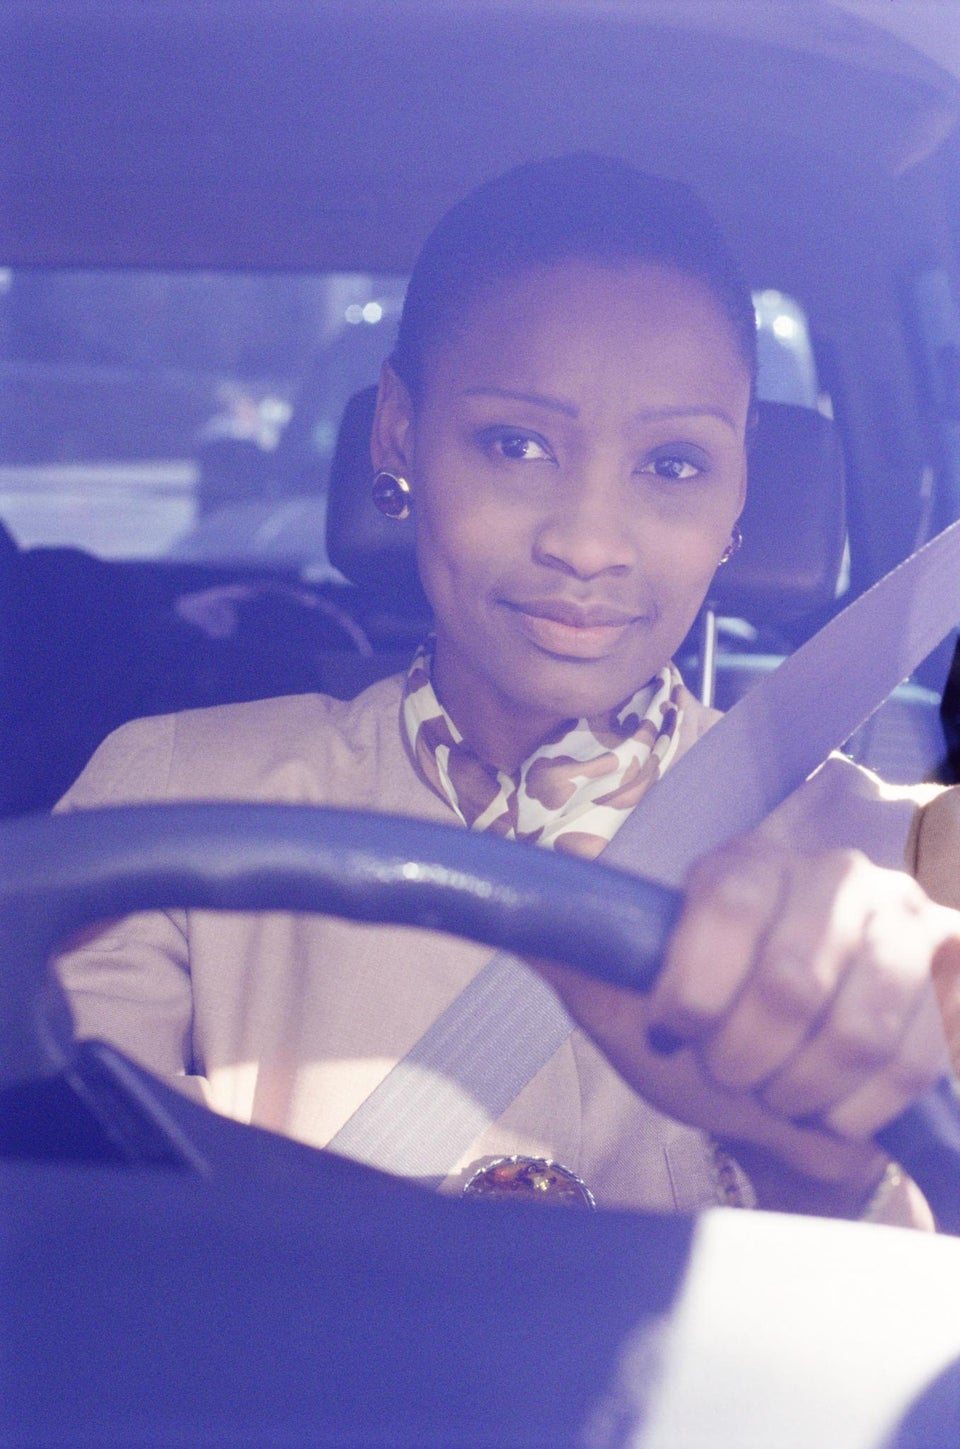 ESSENCE Poll: What's the Worst Part of Your Daily Commute?